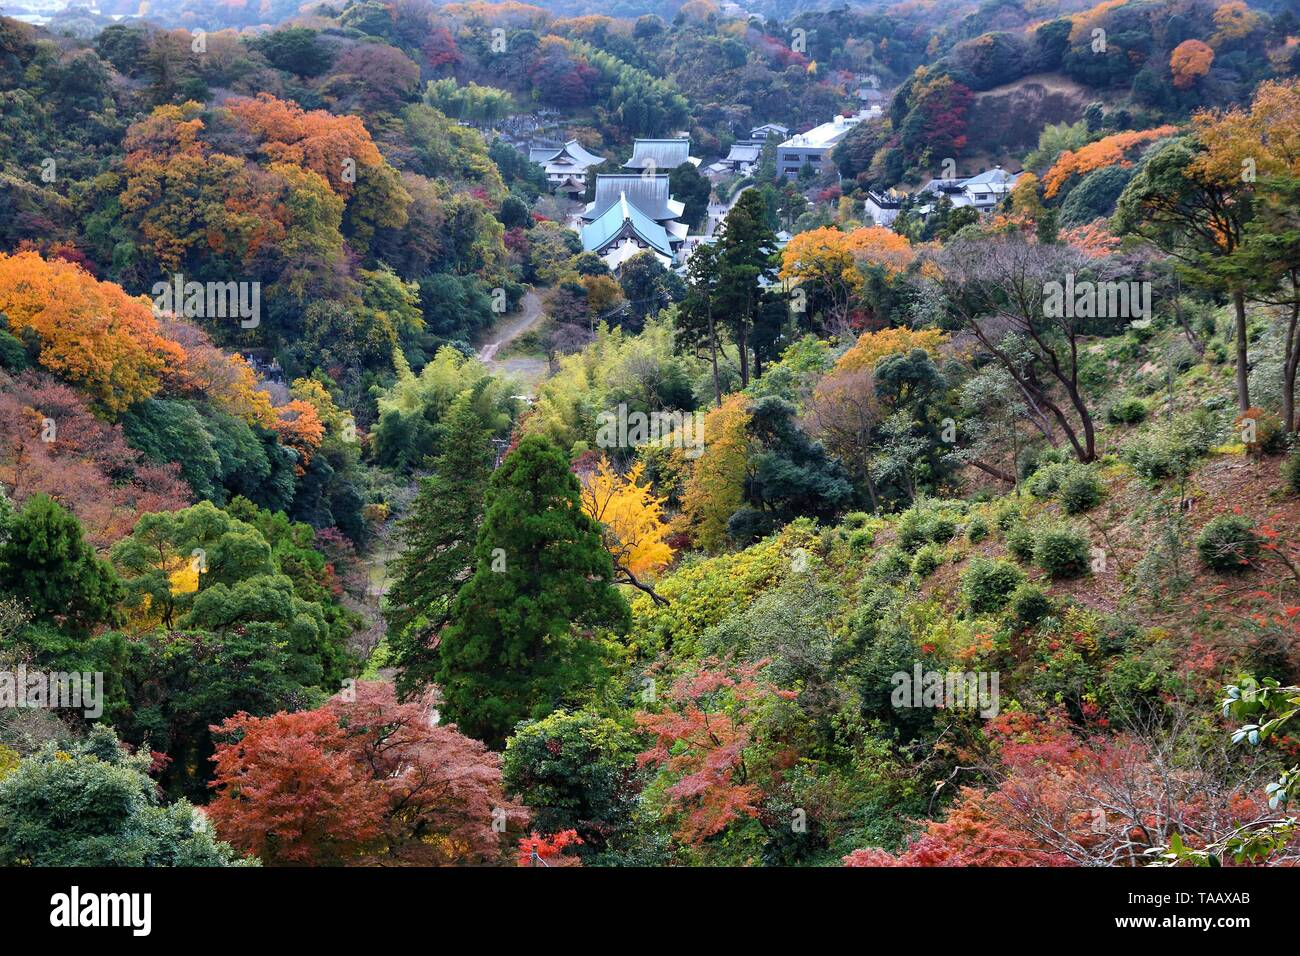 Kamakura, Japan - Zen Buddhist temple of Kencho-ji. Aerial view with autumn forests. - Stock Image